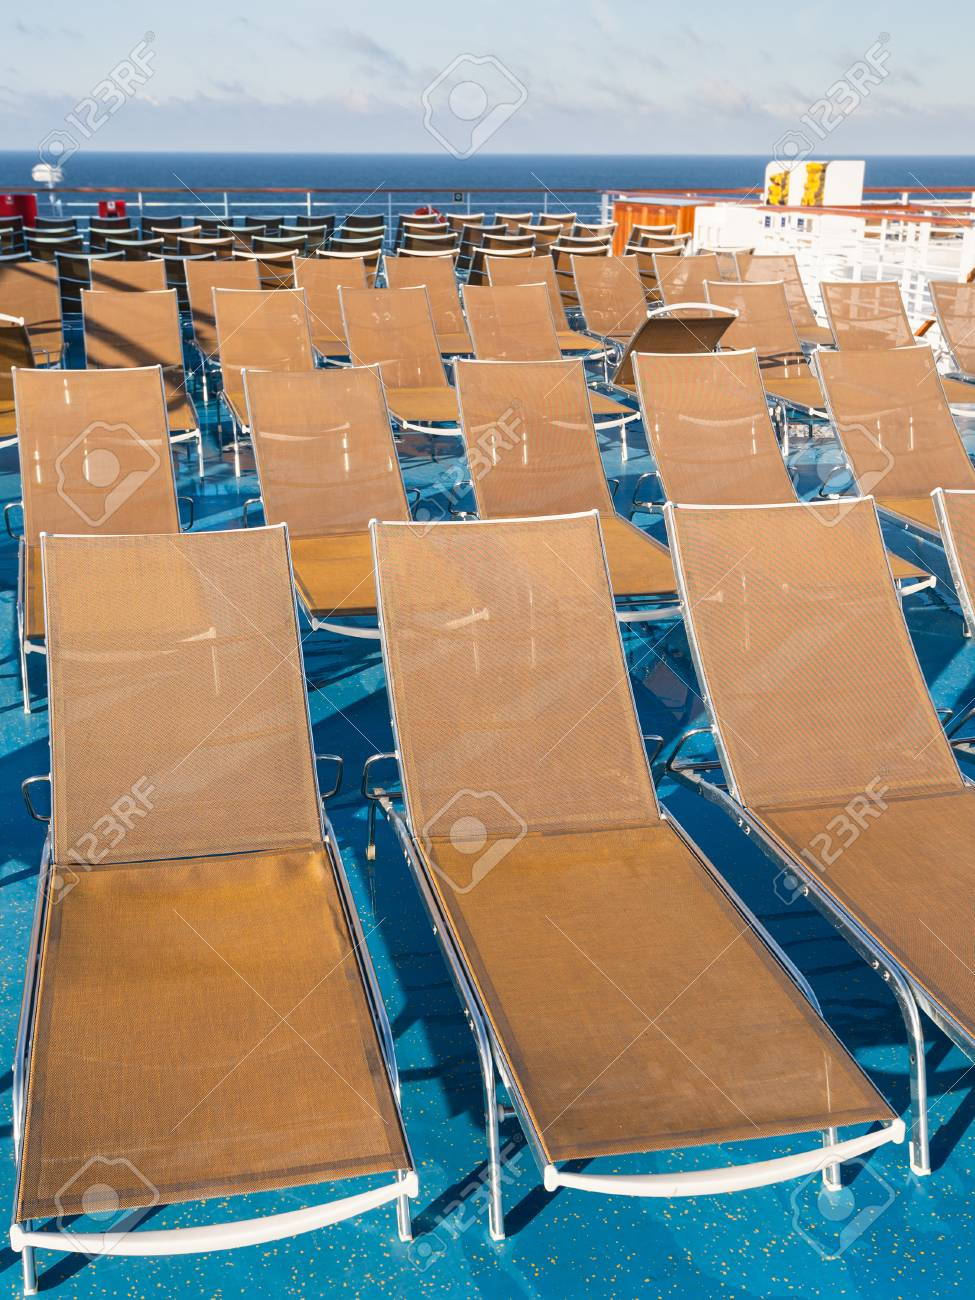 Many Empty Sunbathing Chairs On Deck Of Cruise Liner Stock Photo   71642988